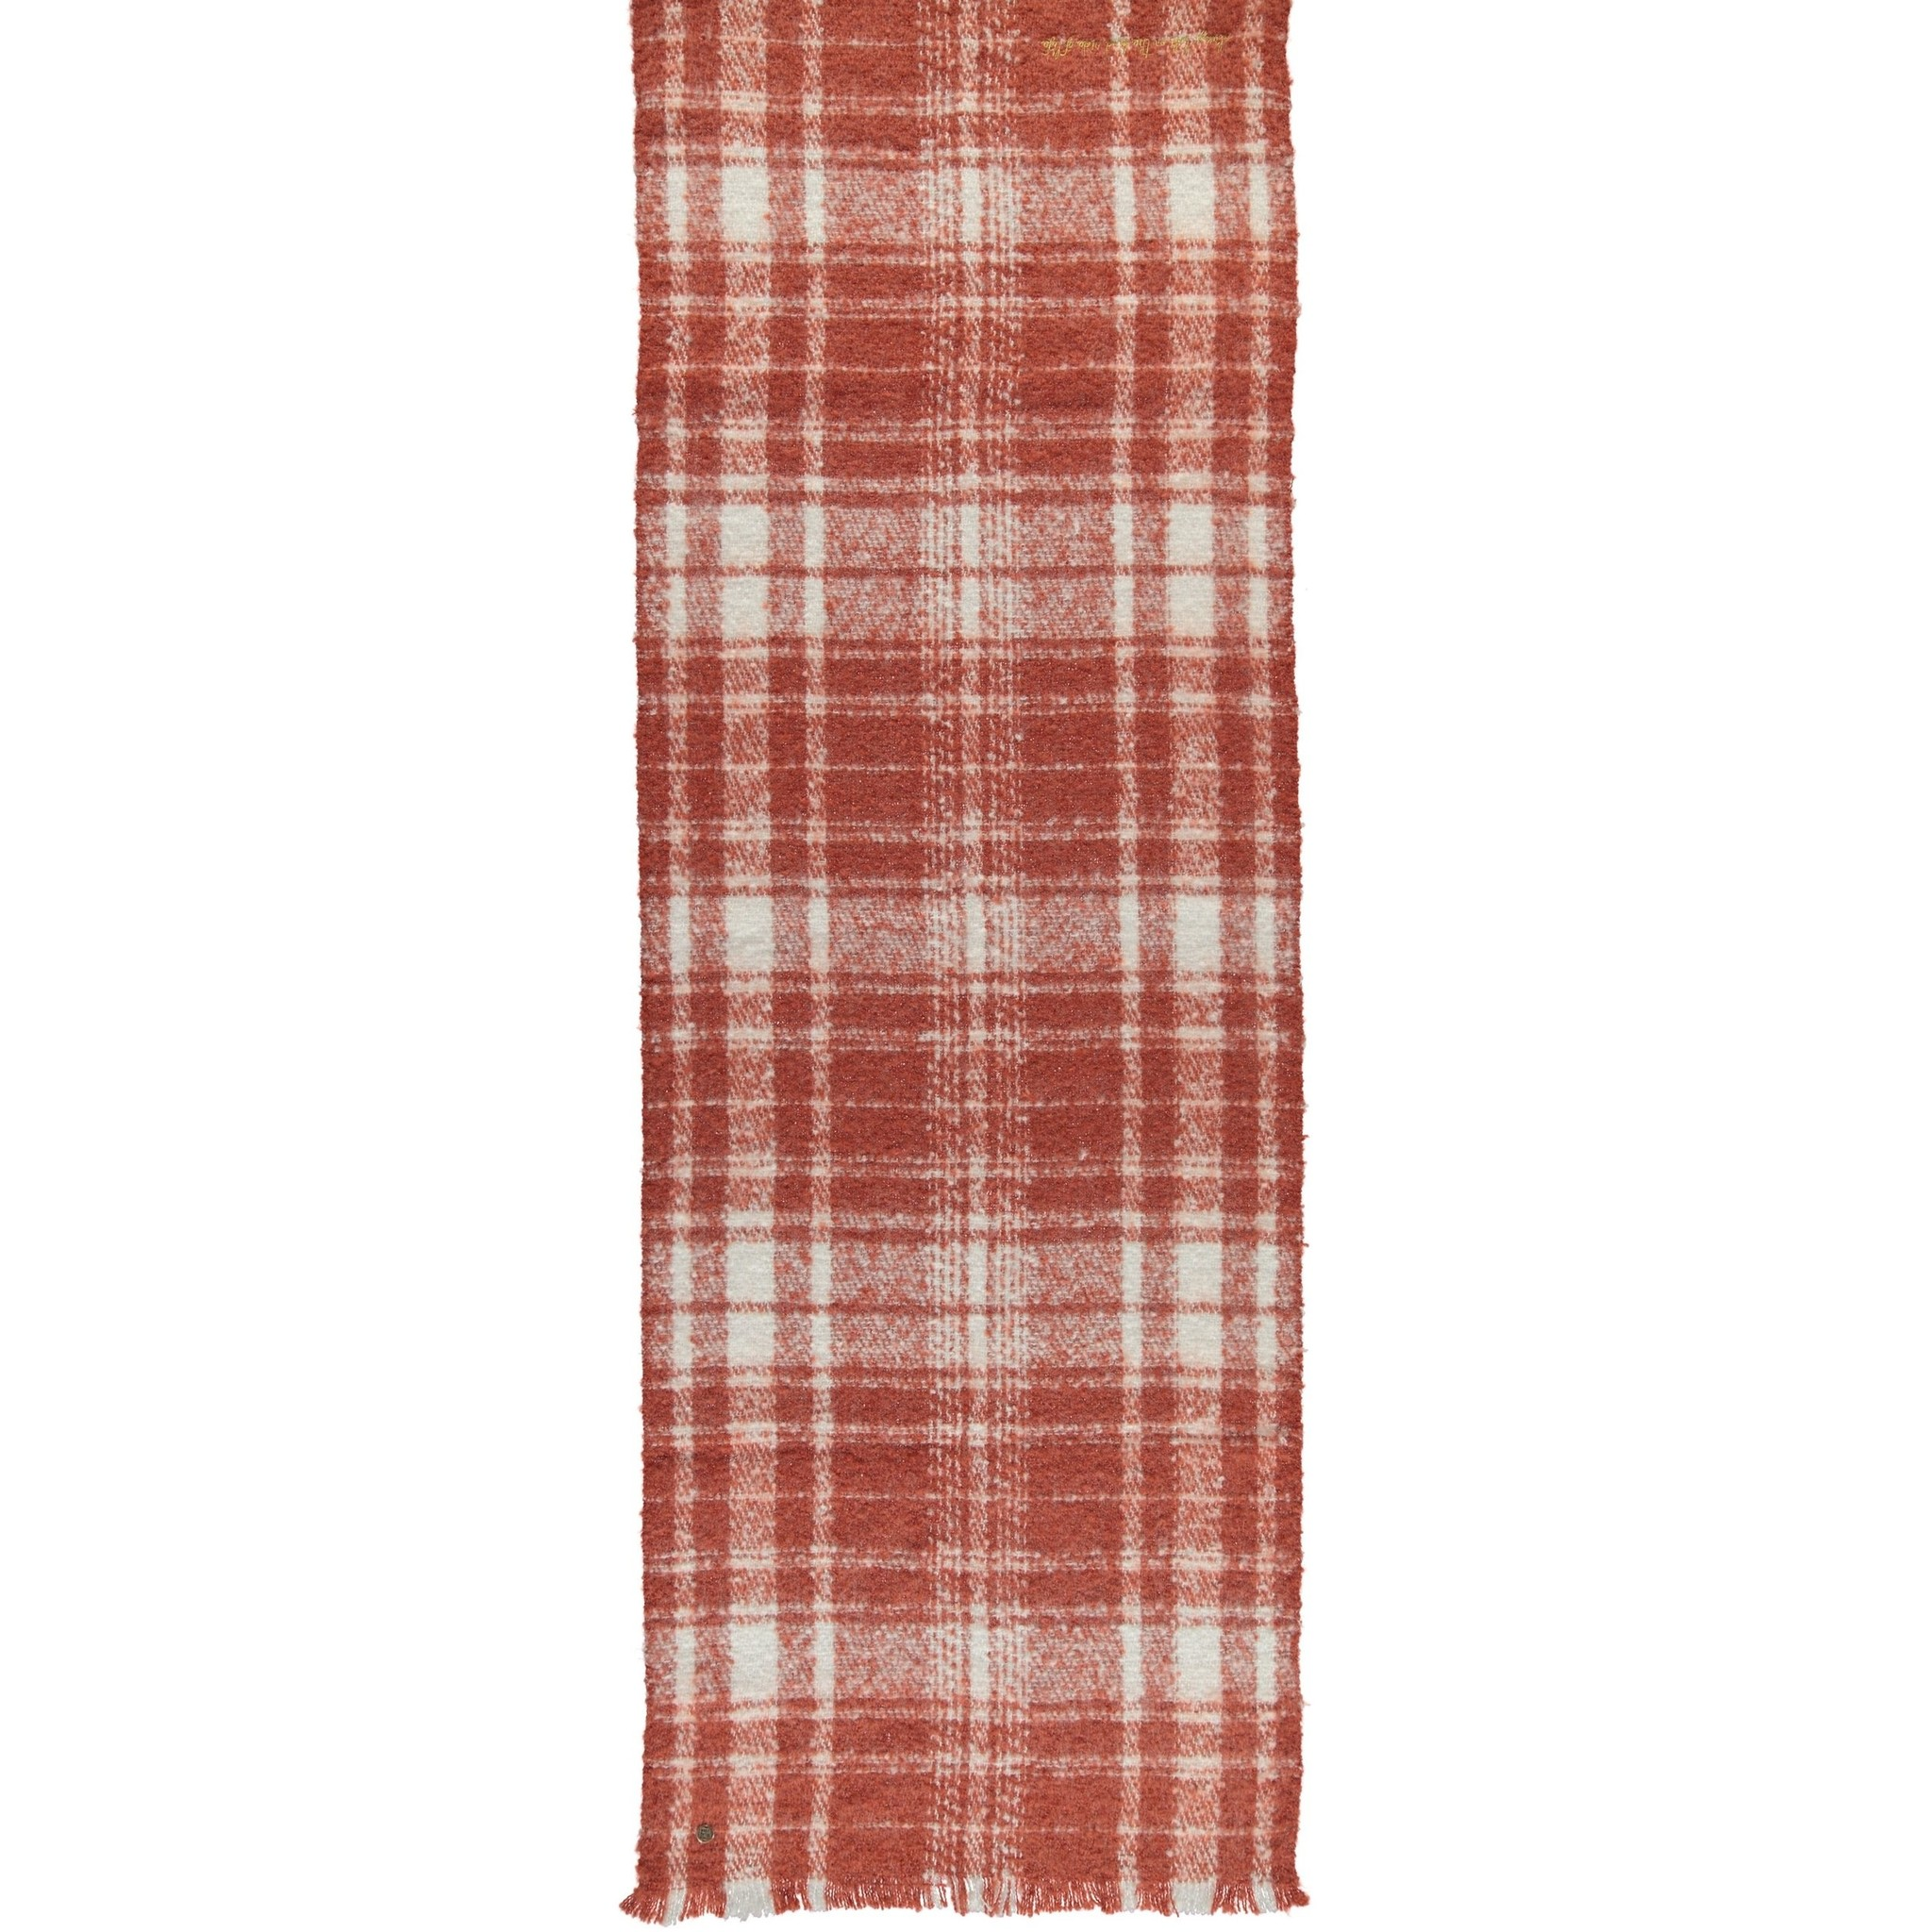 Birds on the Run Check Woven Scarf - Rust